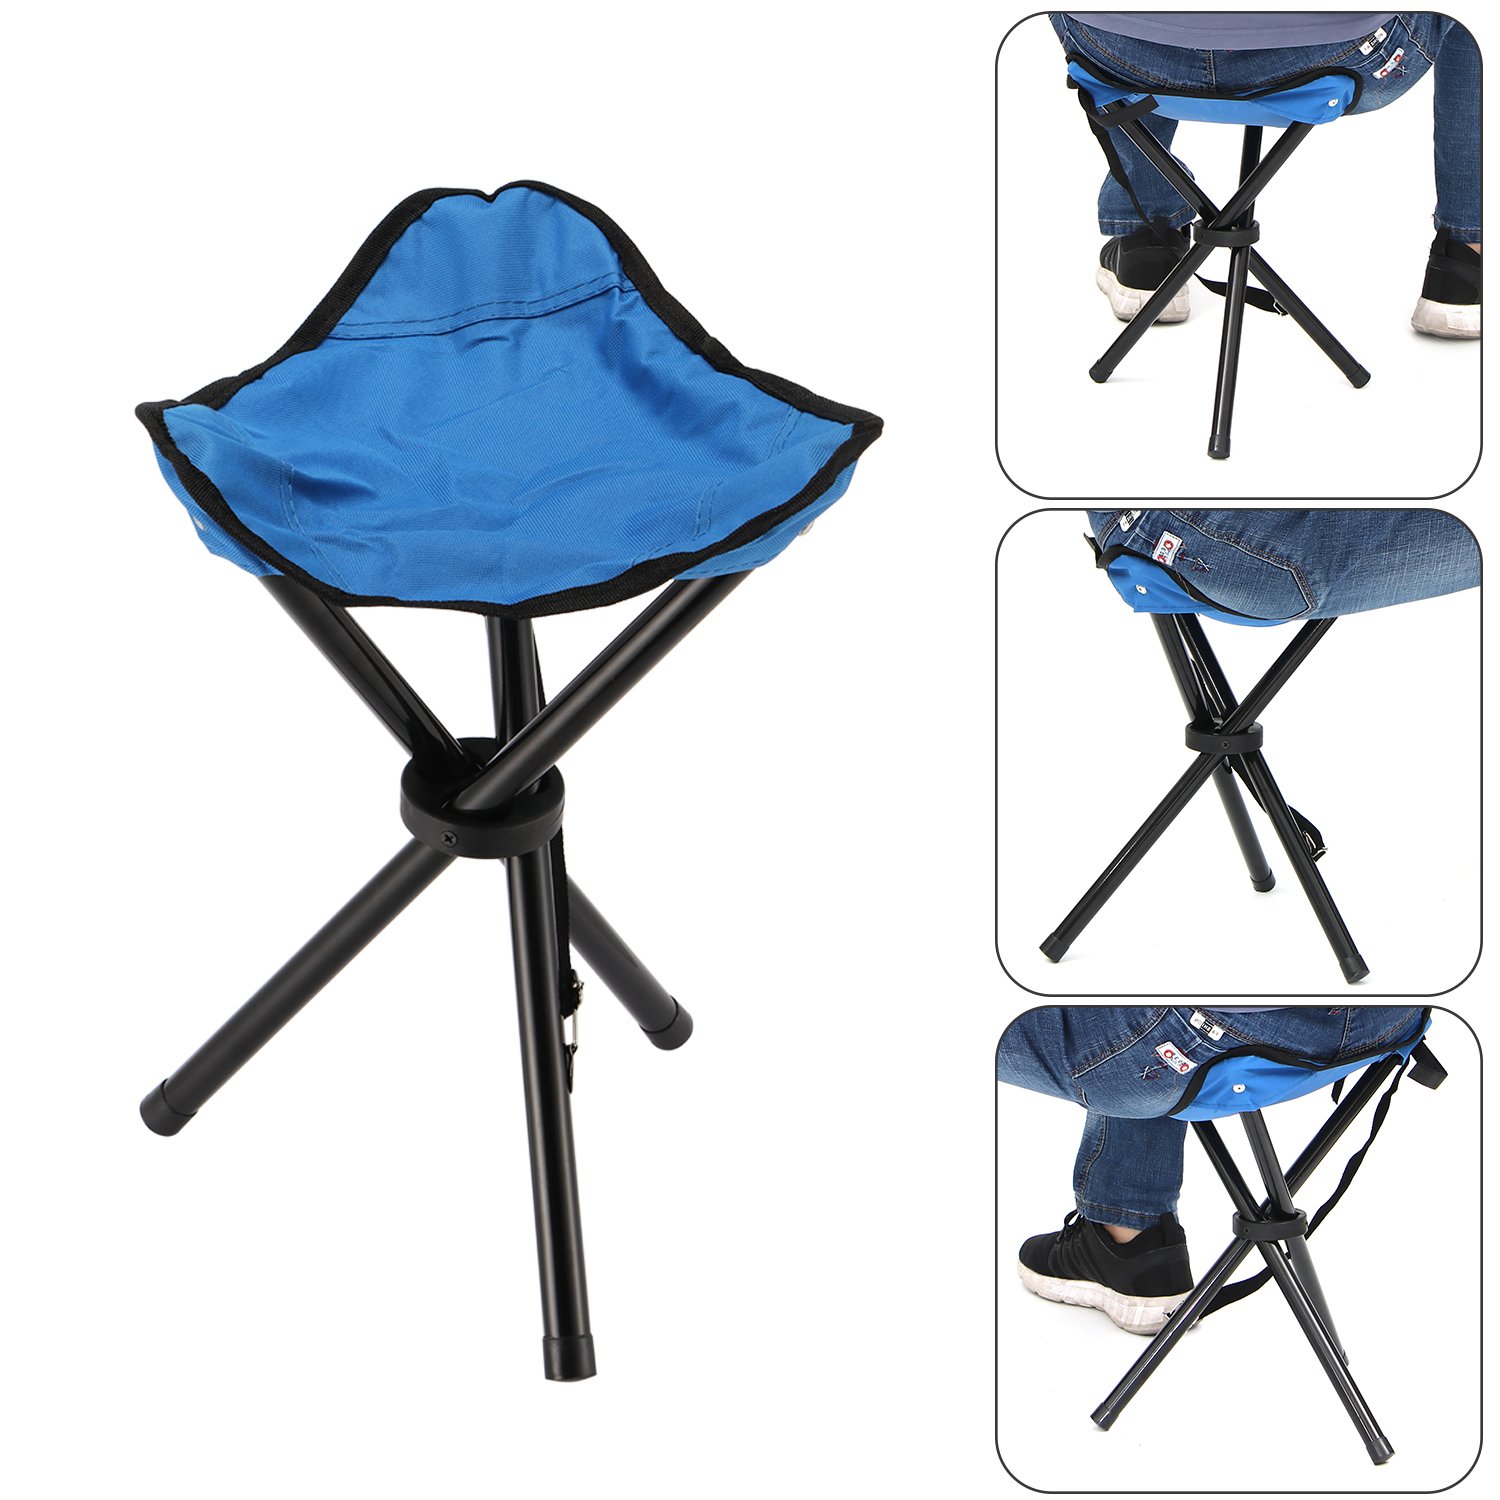 New Portable Tripod Stool Folding Chair With Carrying Case